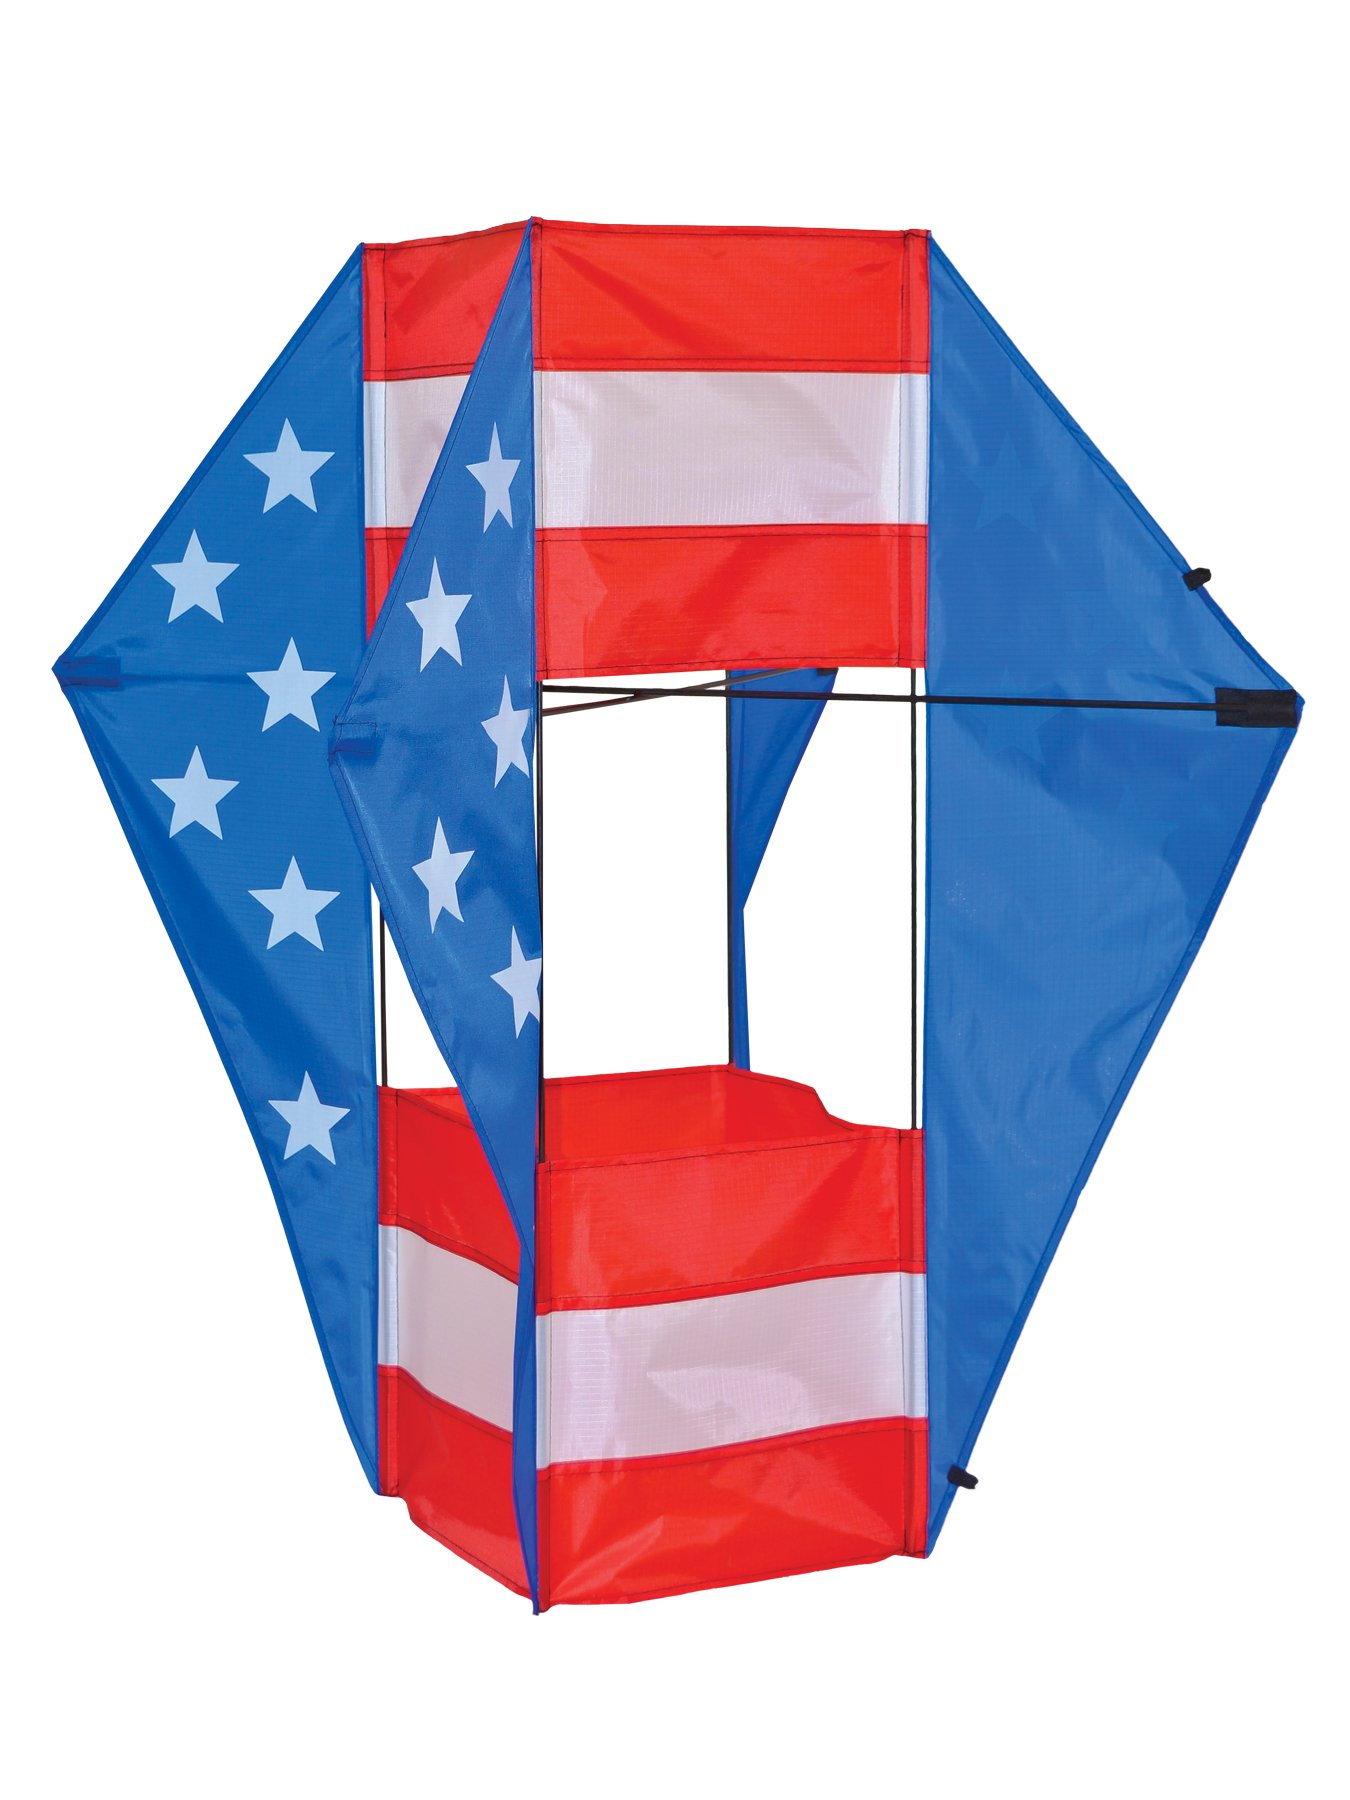 In The Breeze Stars and Stripes Winged Box Kite by In the Breeze